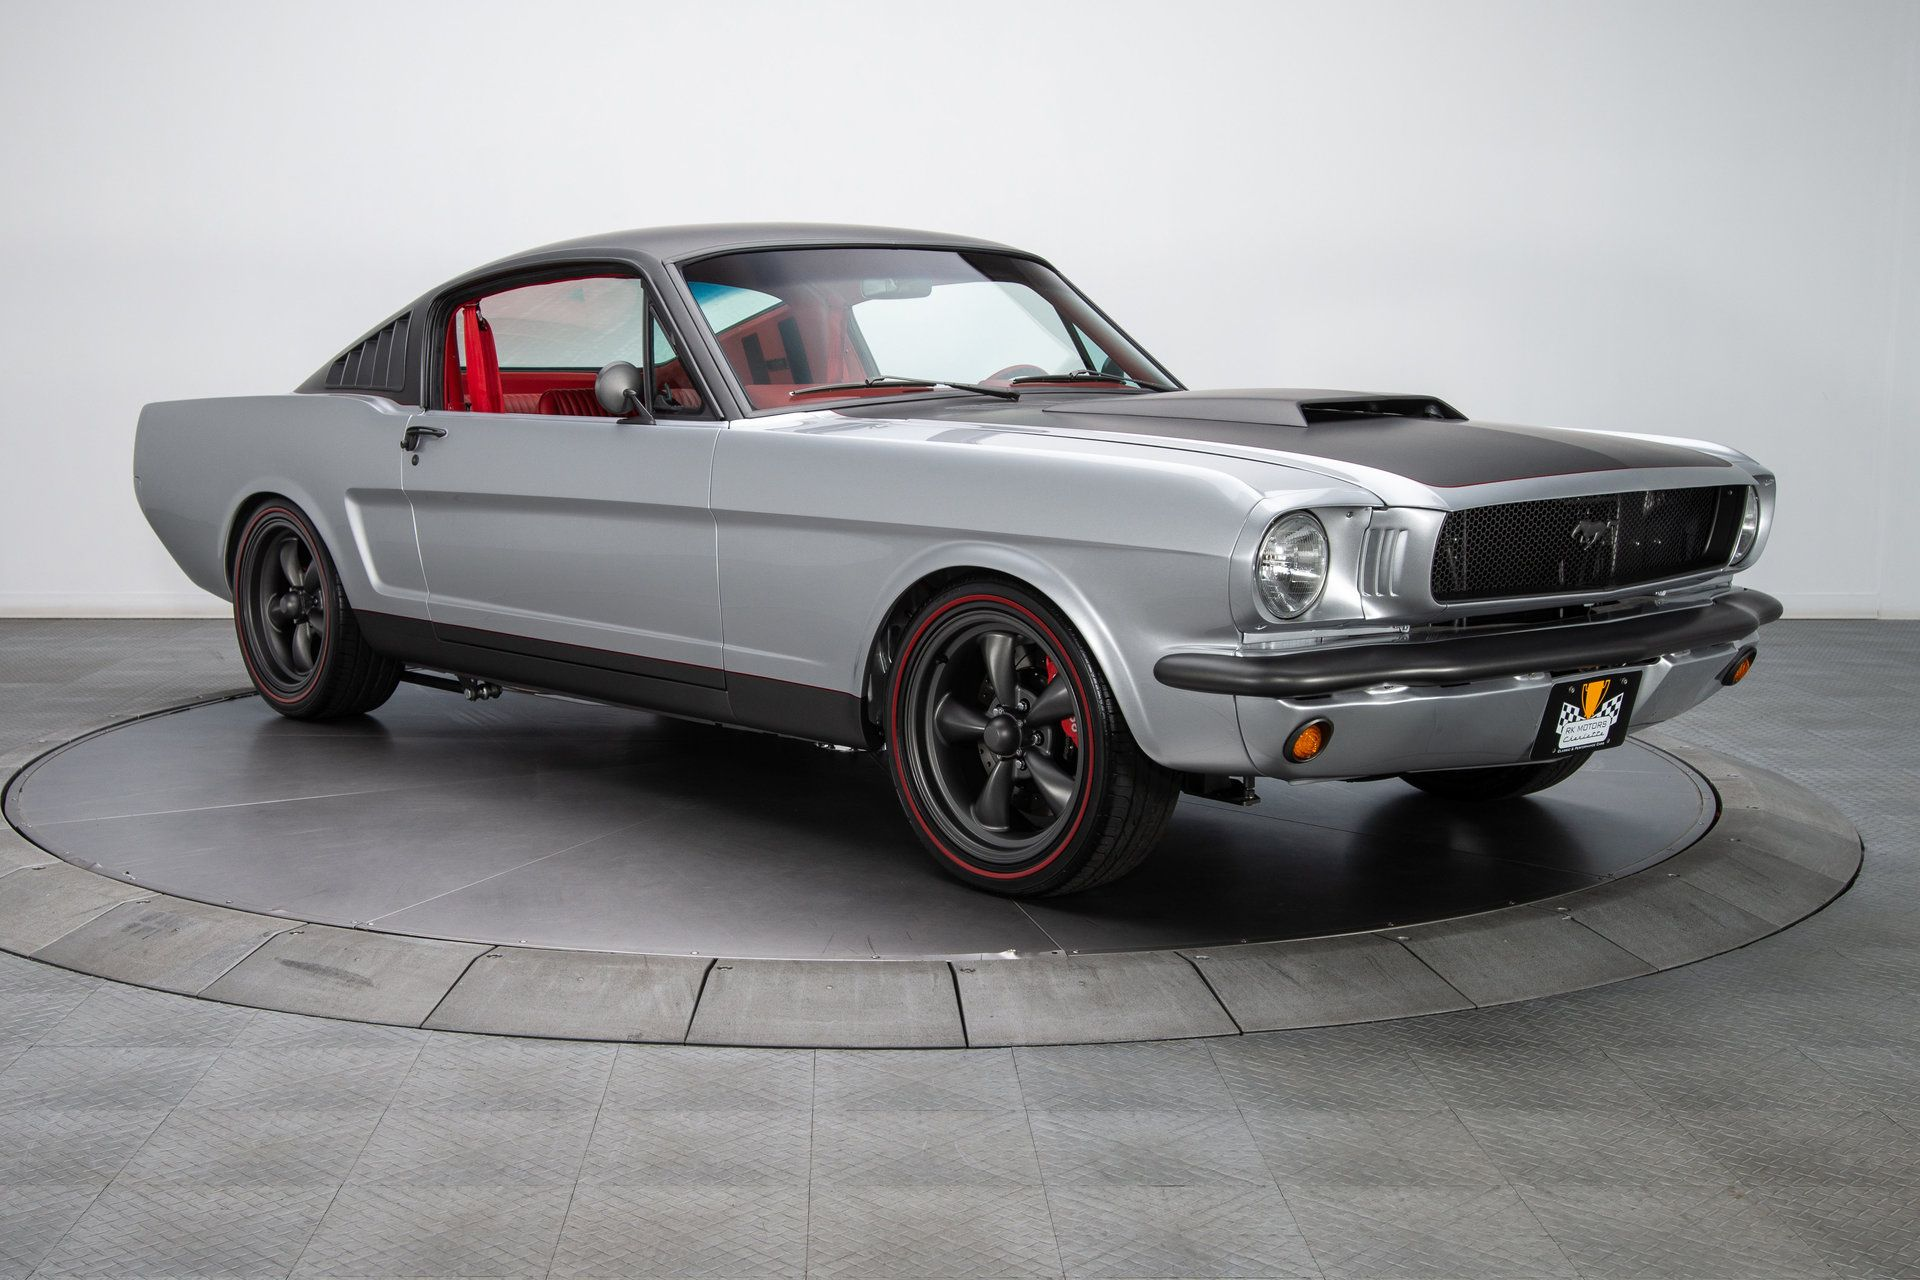 Real deal mustang indonesia cars mustang 67 mustang mustang parts